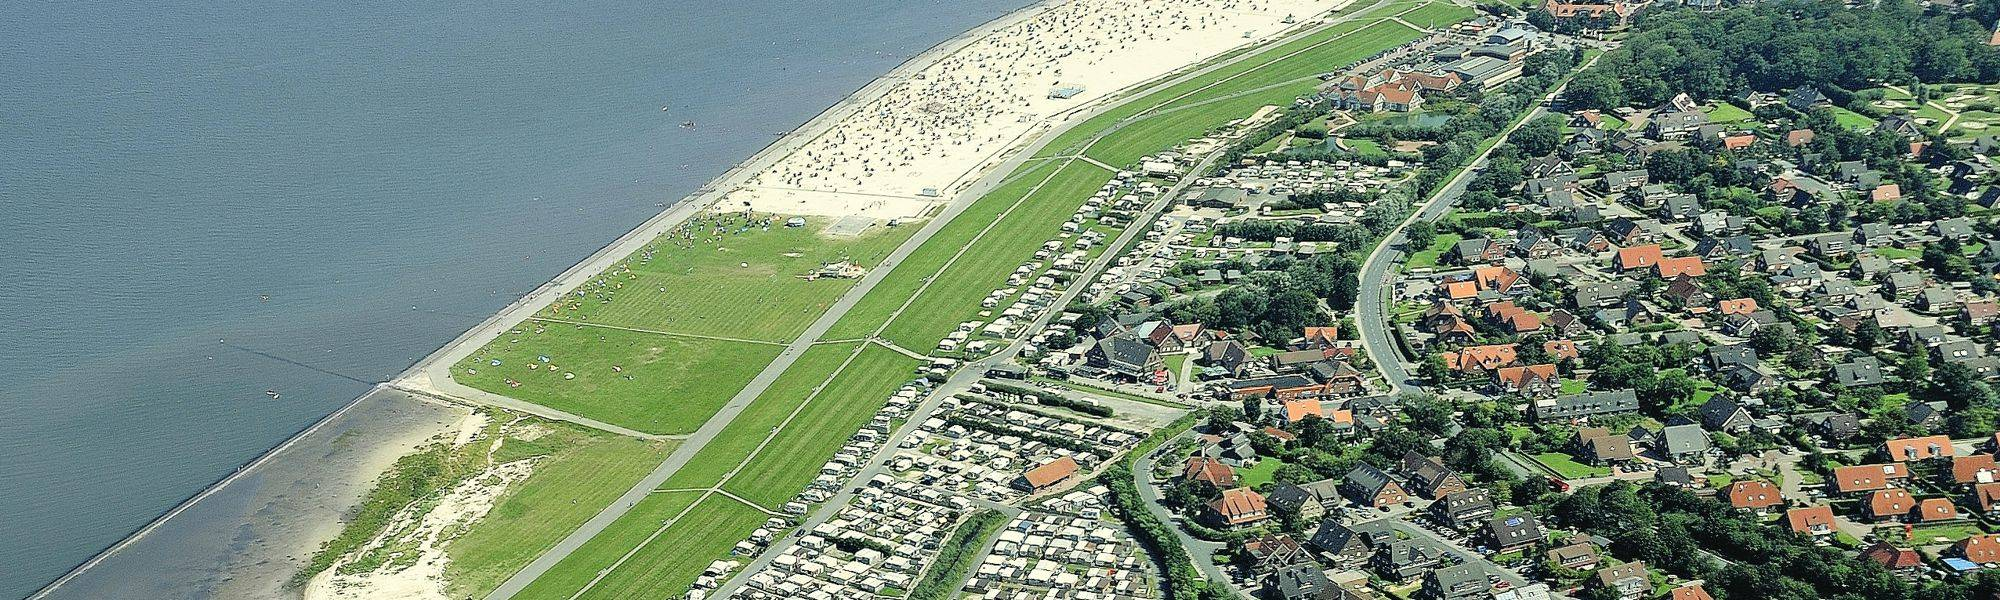 Nordsee Camping in Neuharlingersiel am Deich